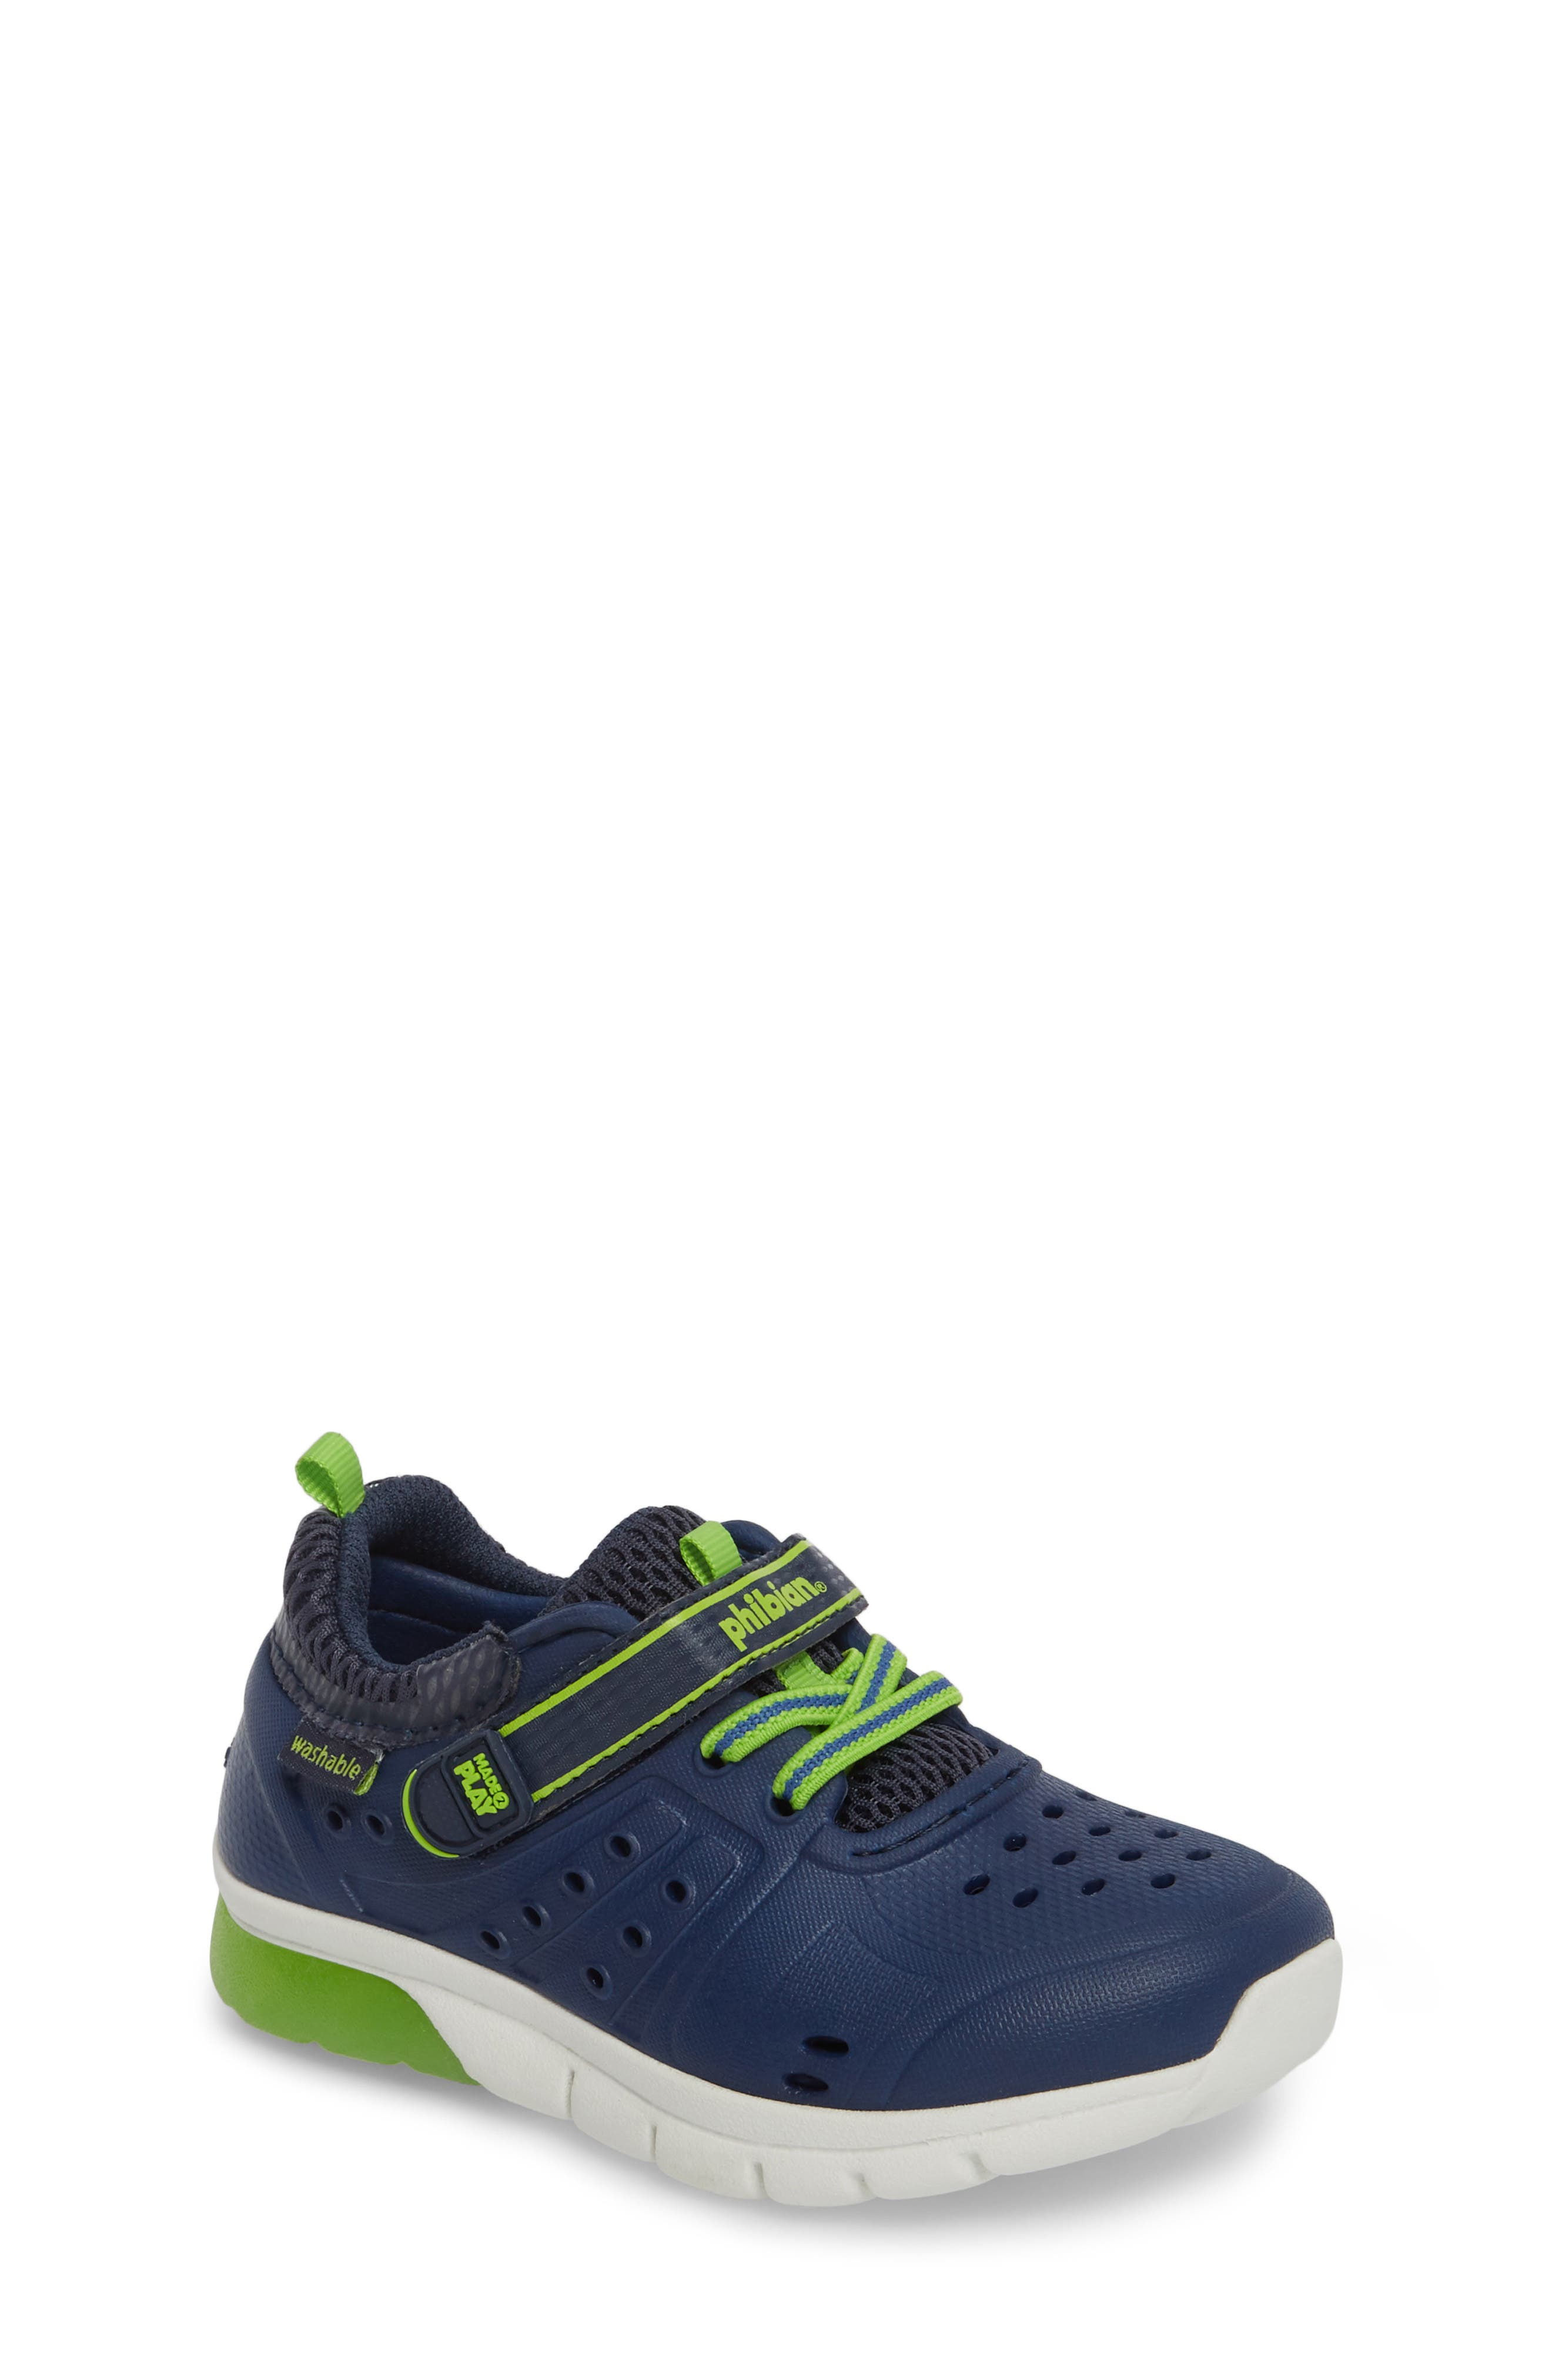 Made2Play<sup>®</sup> Phibian Light-Up Sneaker,                             Main thumbnail 1, color,                             NAVY